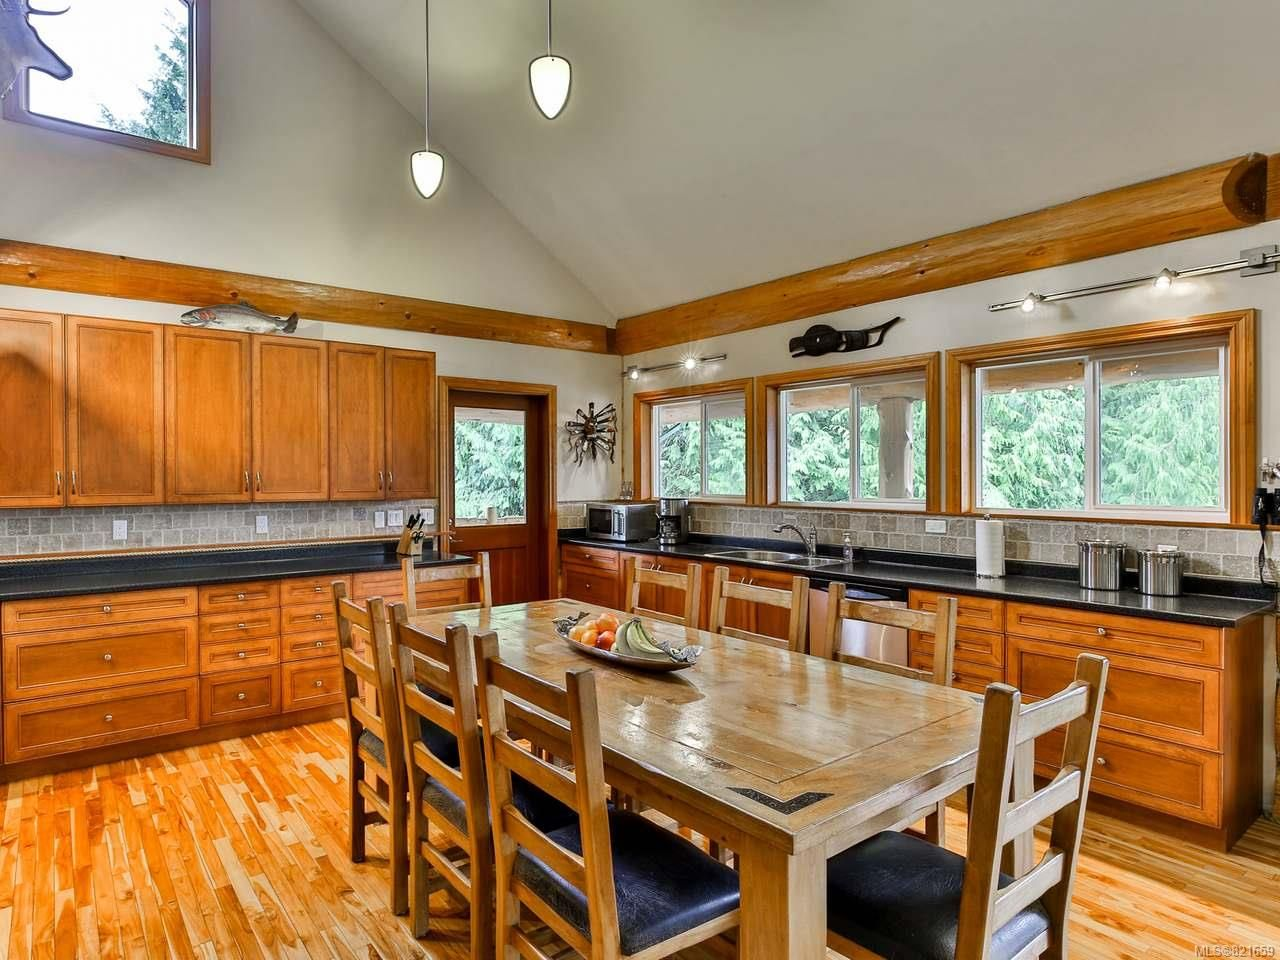 Photo 9: Photos: 1049 Helen Rd in UCLUELET: PA Ucluelet House for sale (Port Alberni)  : MLS®# 821659